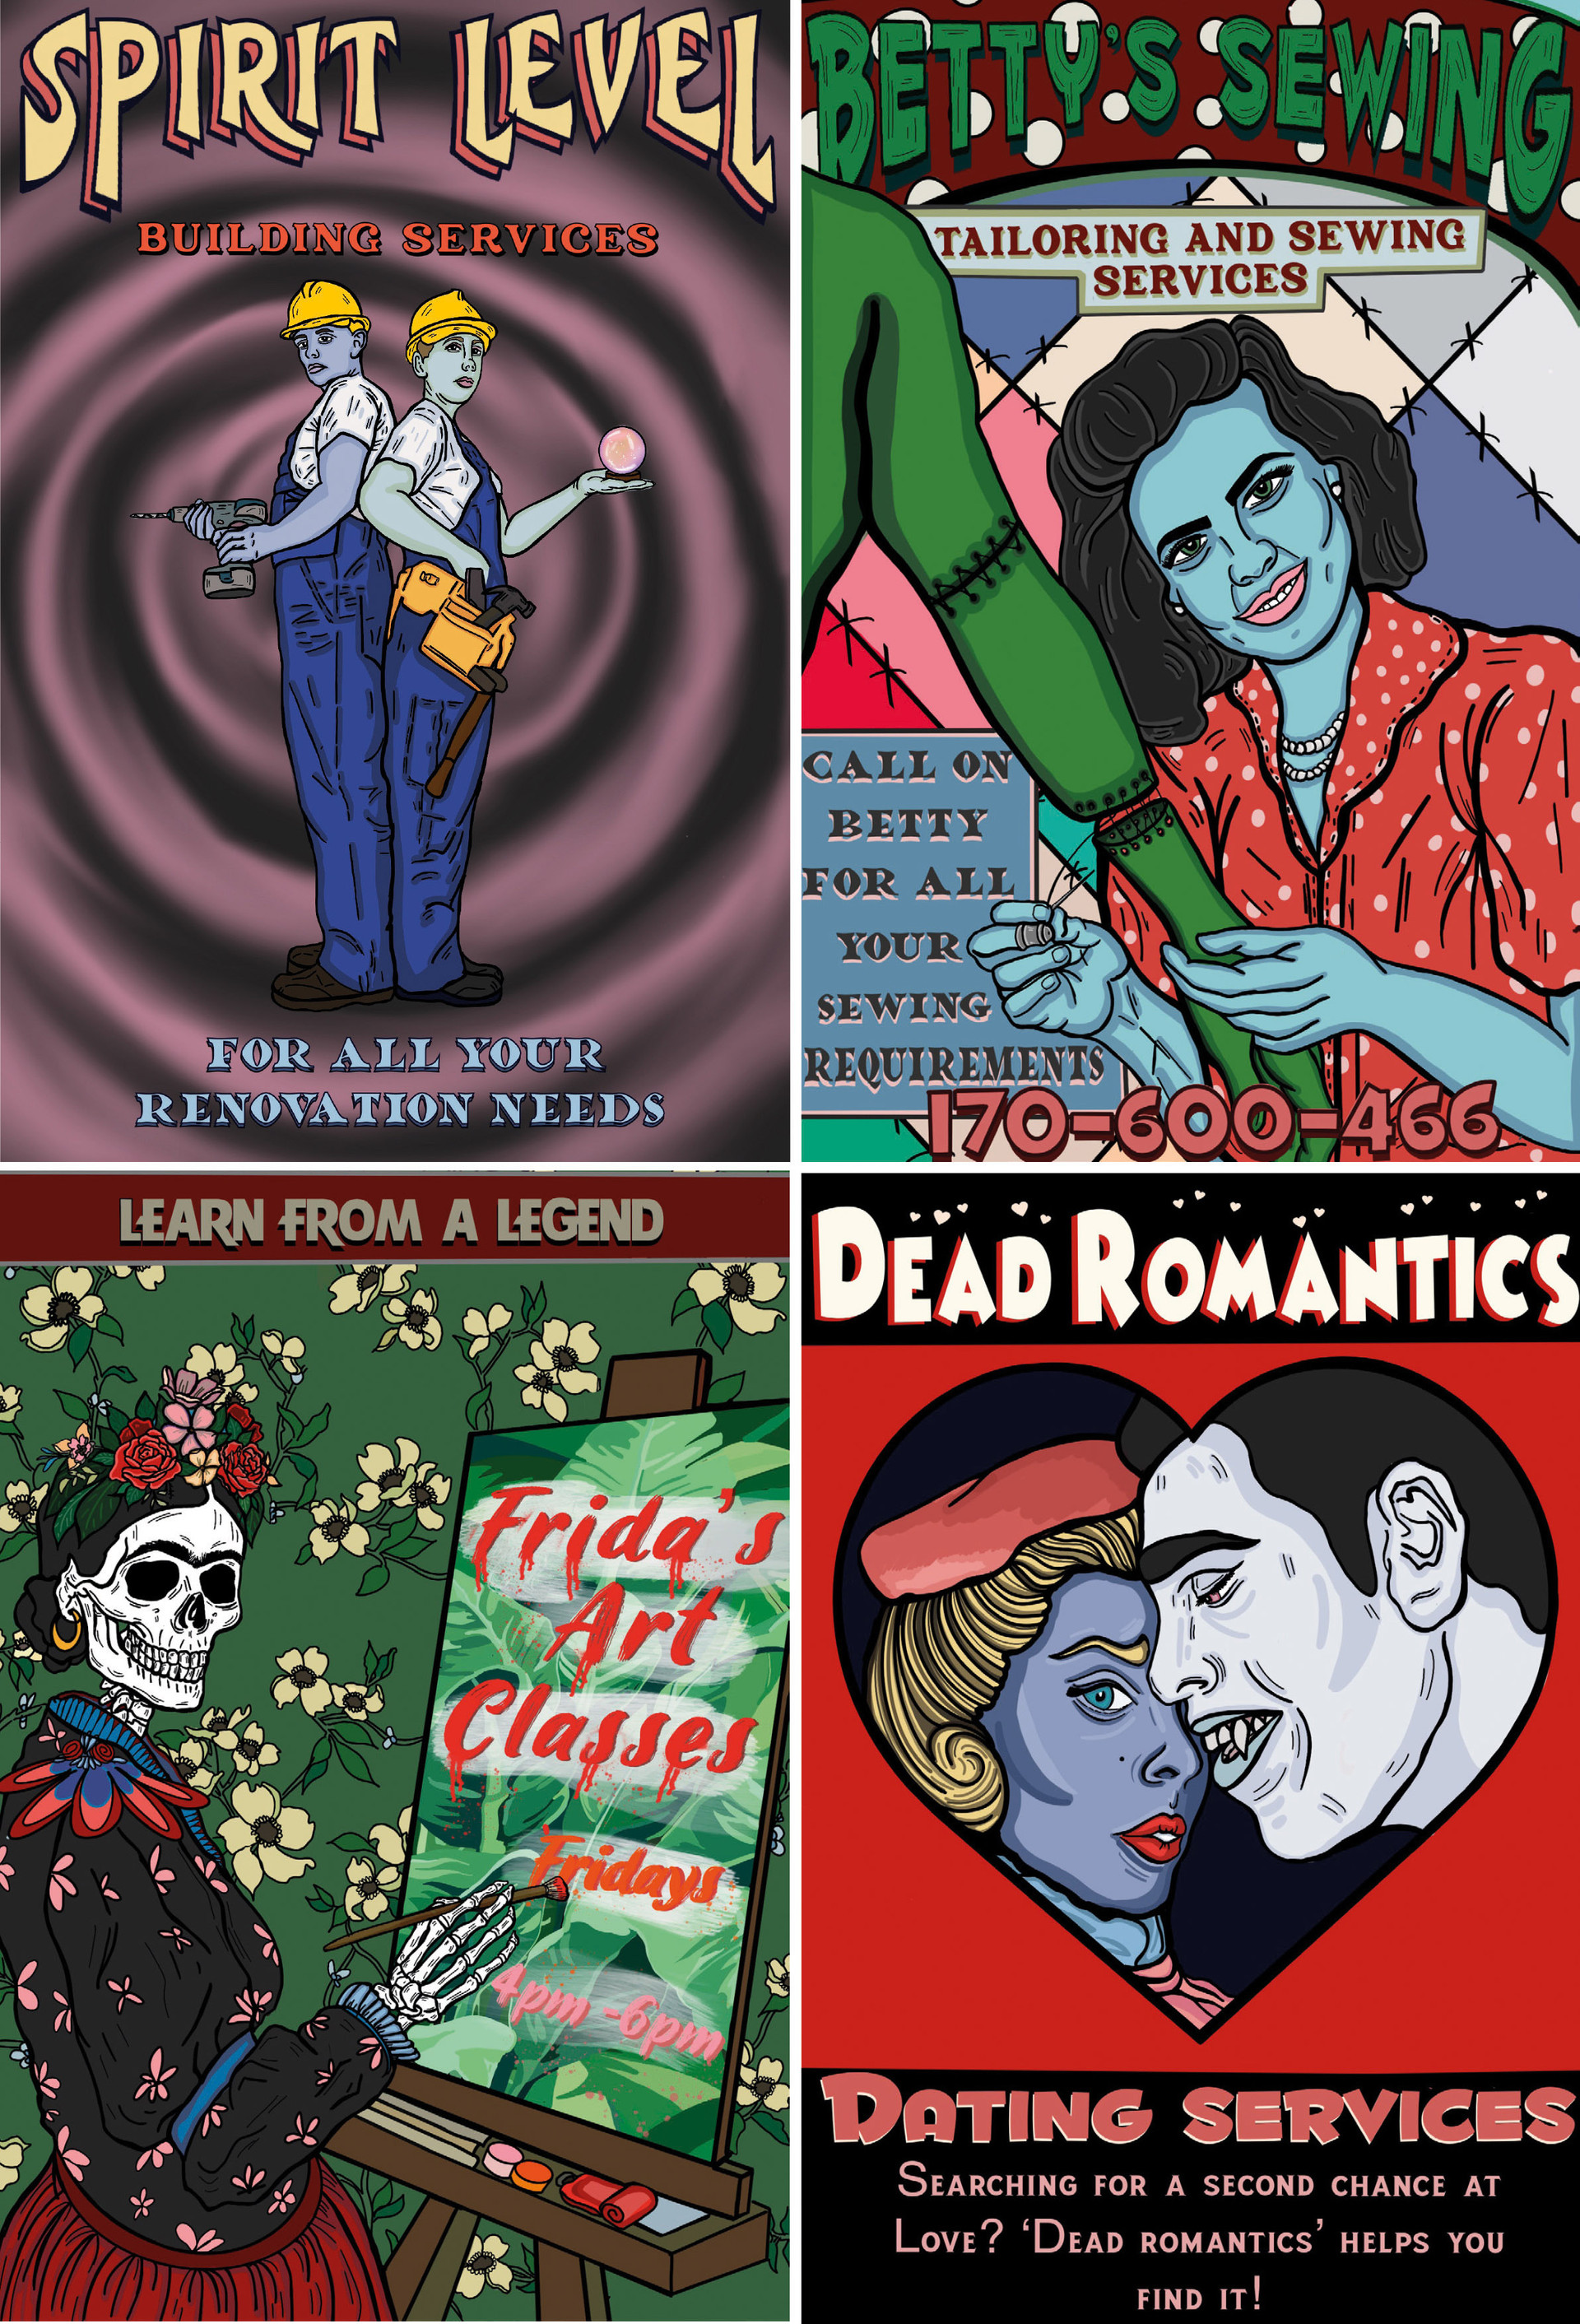 Spirit Level, Betty's Sewing, Learn form a Legend and Dead Romantics  from Afterlife-A guide for the Recently Deceased.